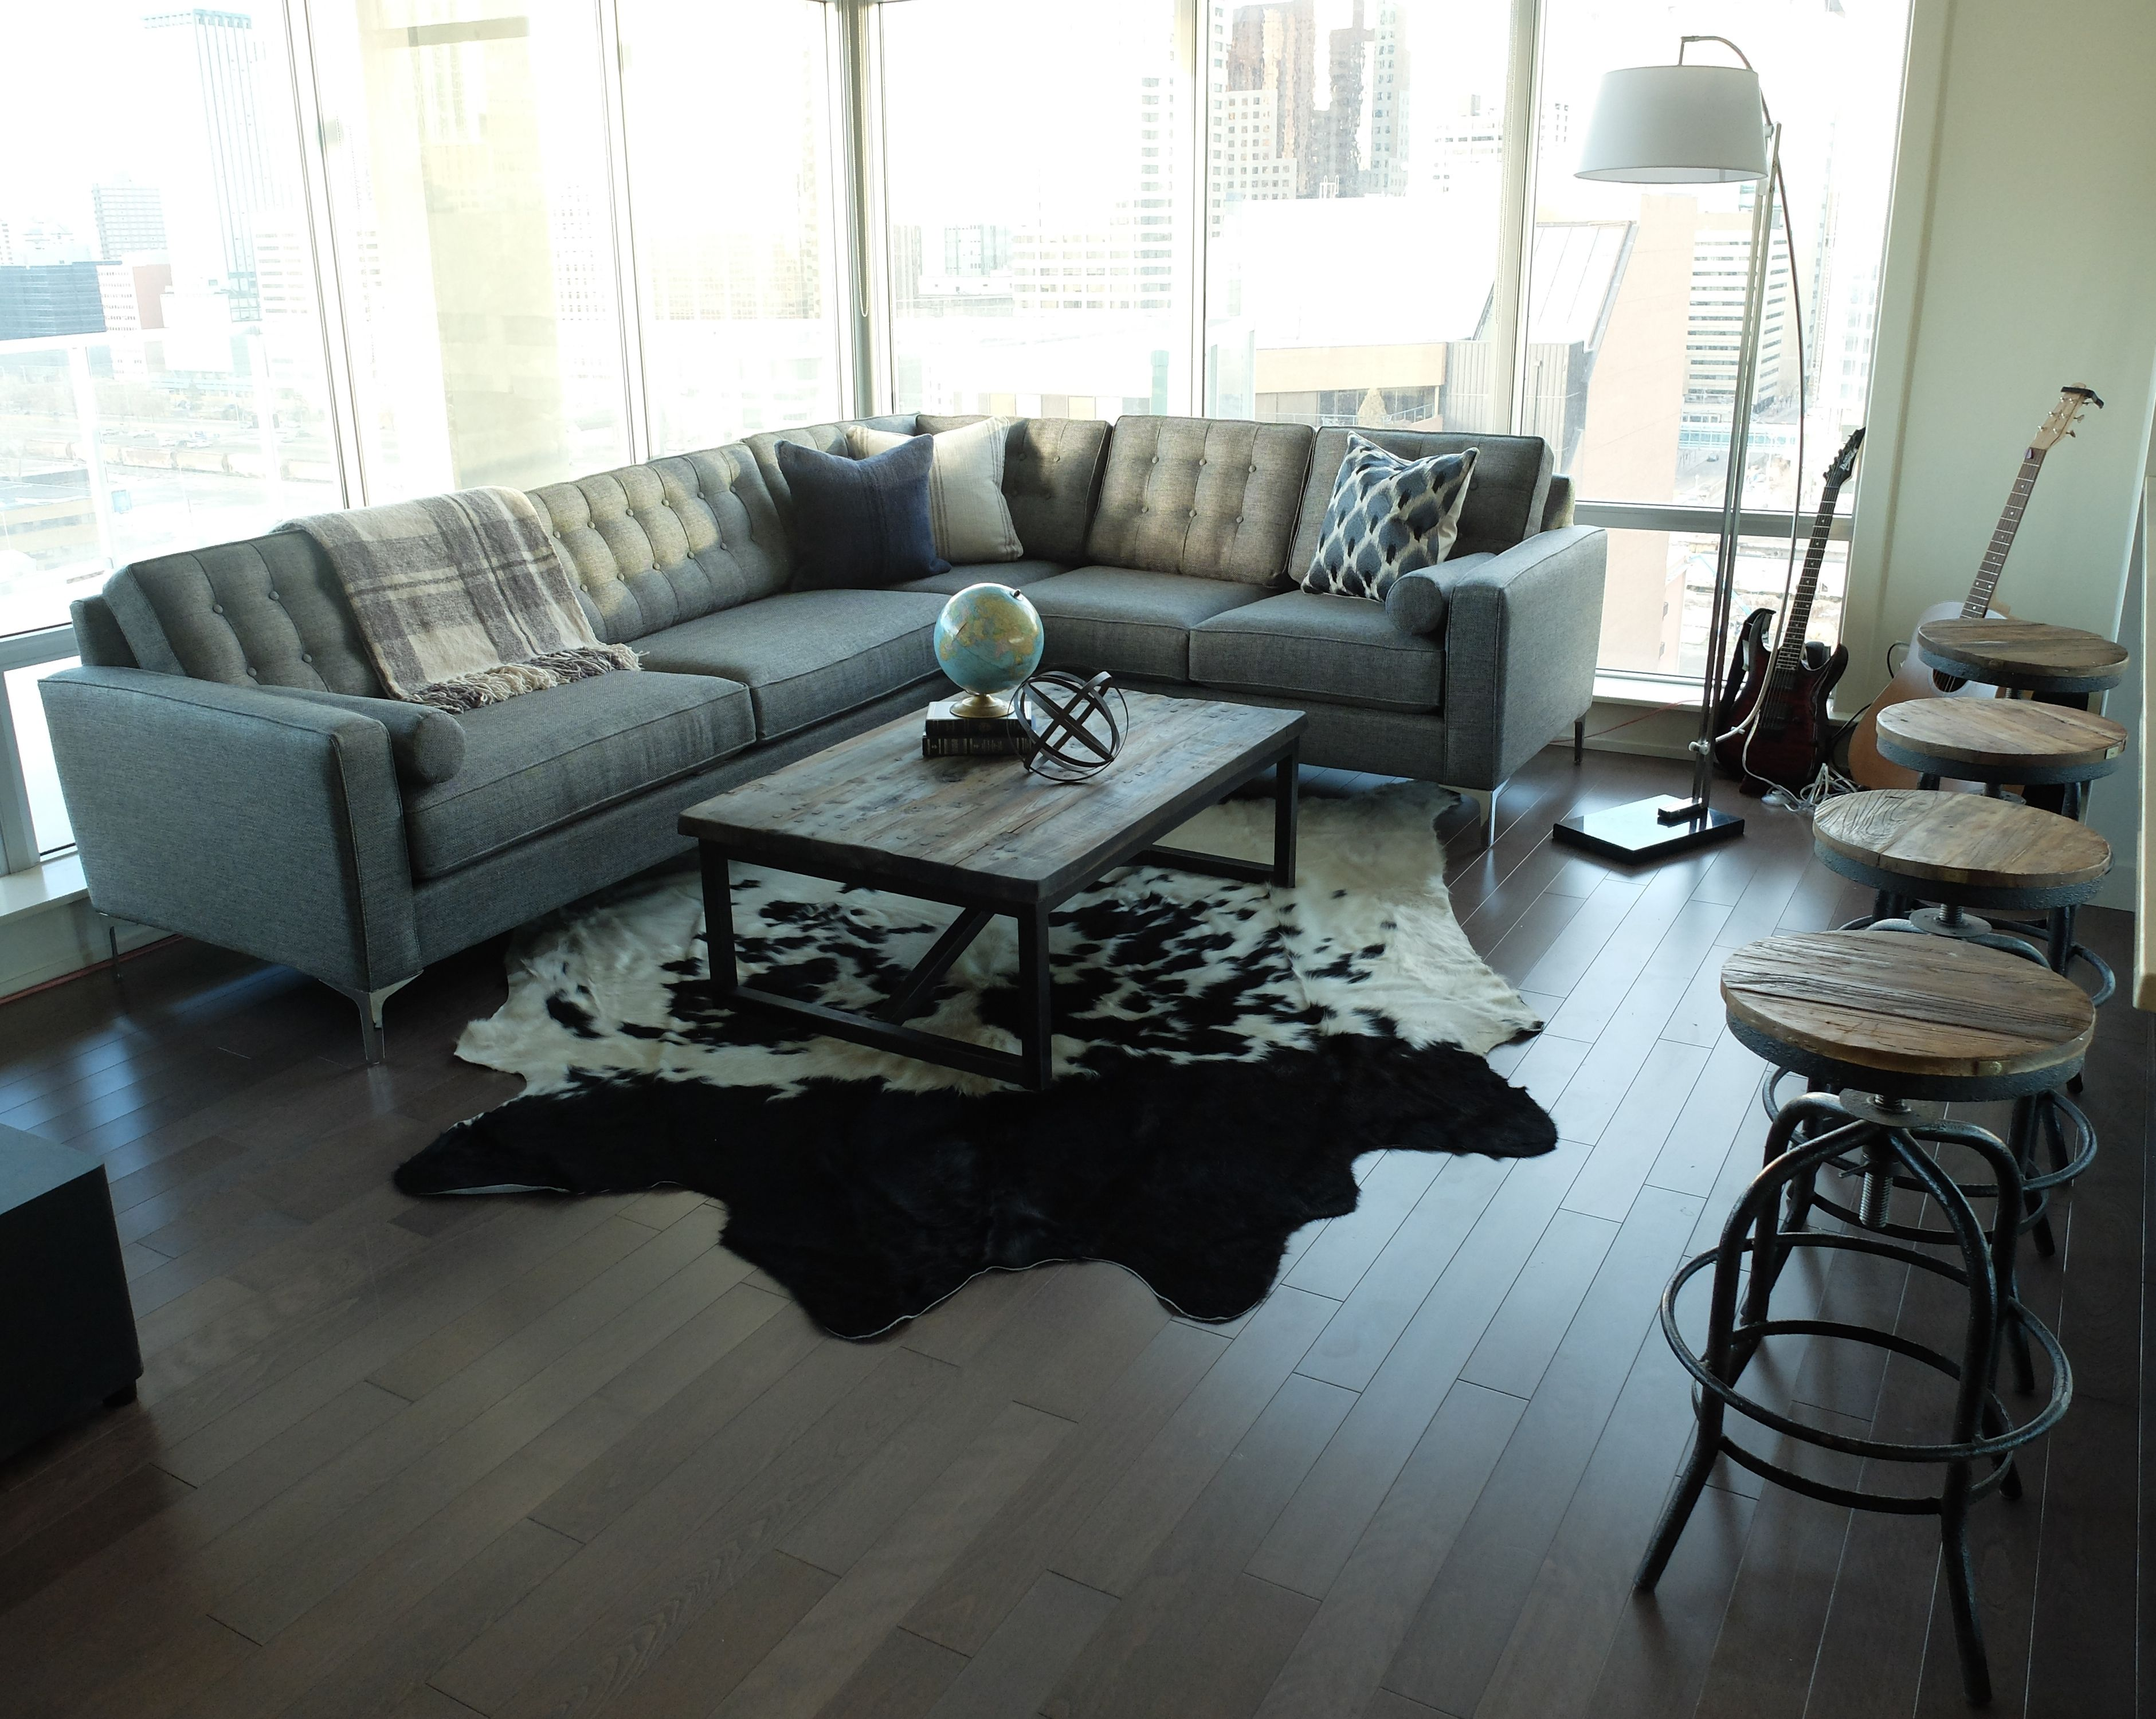 Condo Living Room With Reclaimed Wood Coffee Table, Tufted Gray Sectional,  Black And White